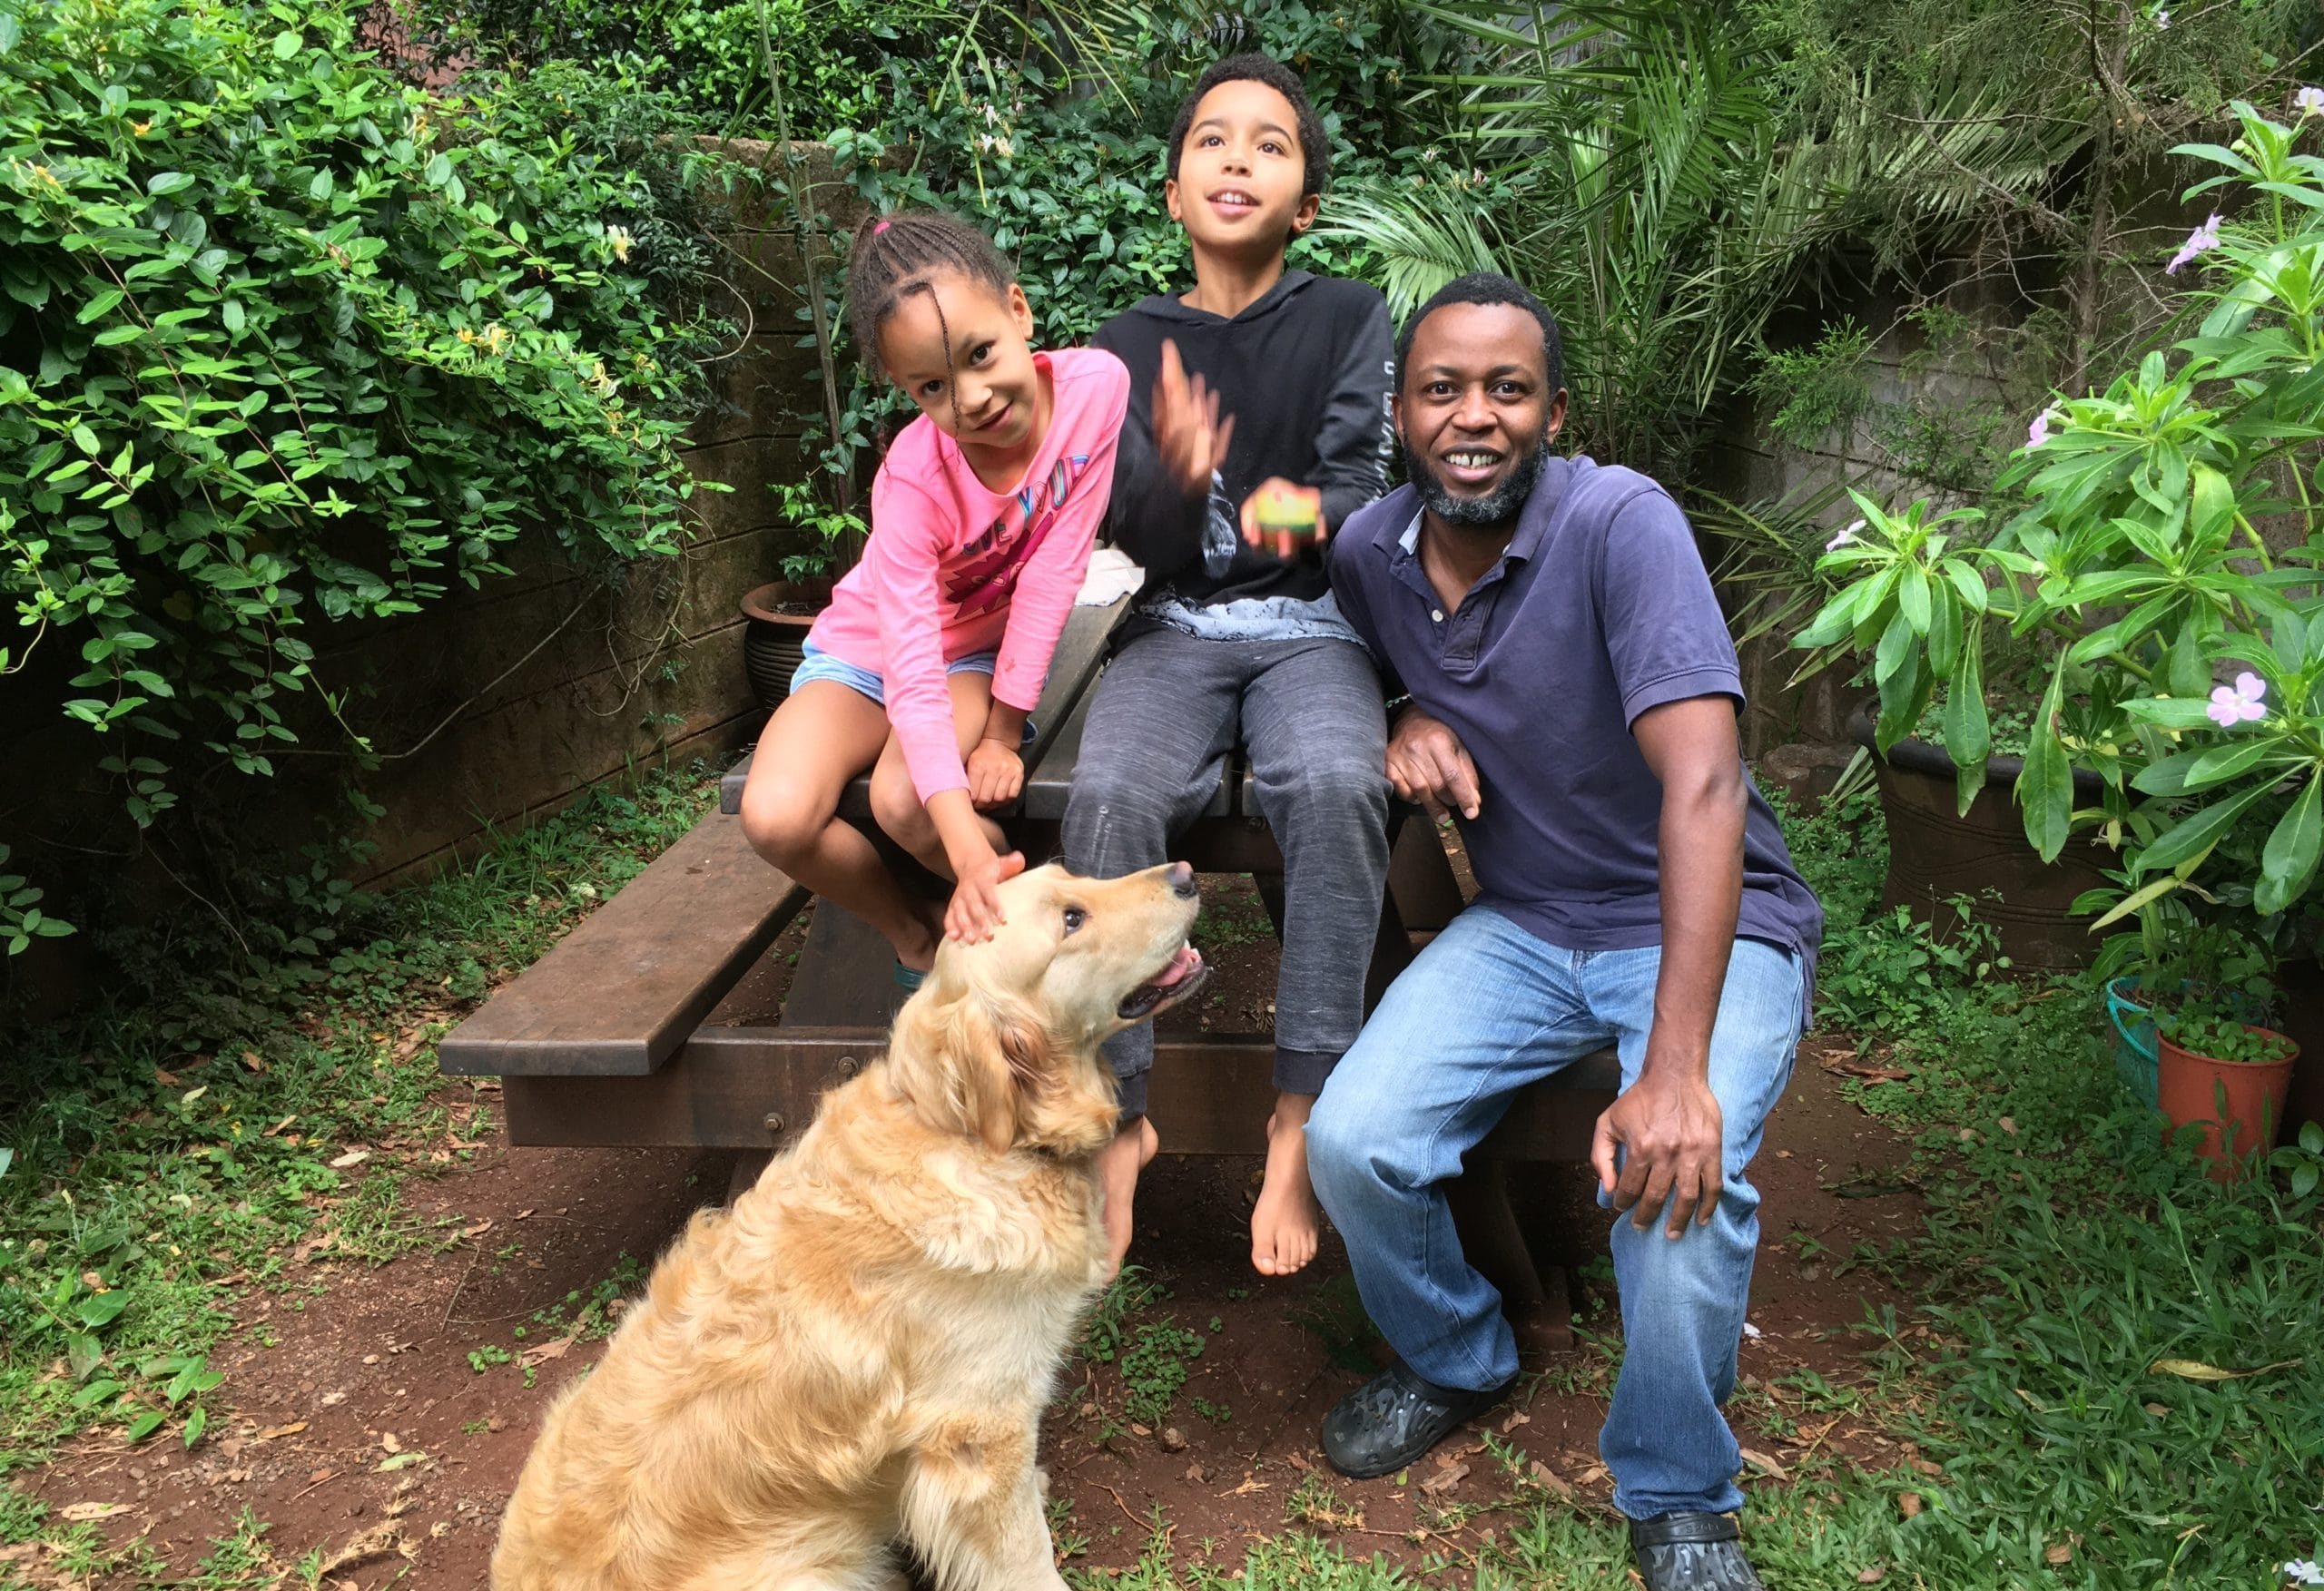 Kamweti wa Mutu with his two children; Charlie, 11, and Adia, 8, with their Golden Retriever, Nalia, pictured at their home in Nairobi